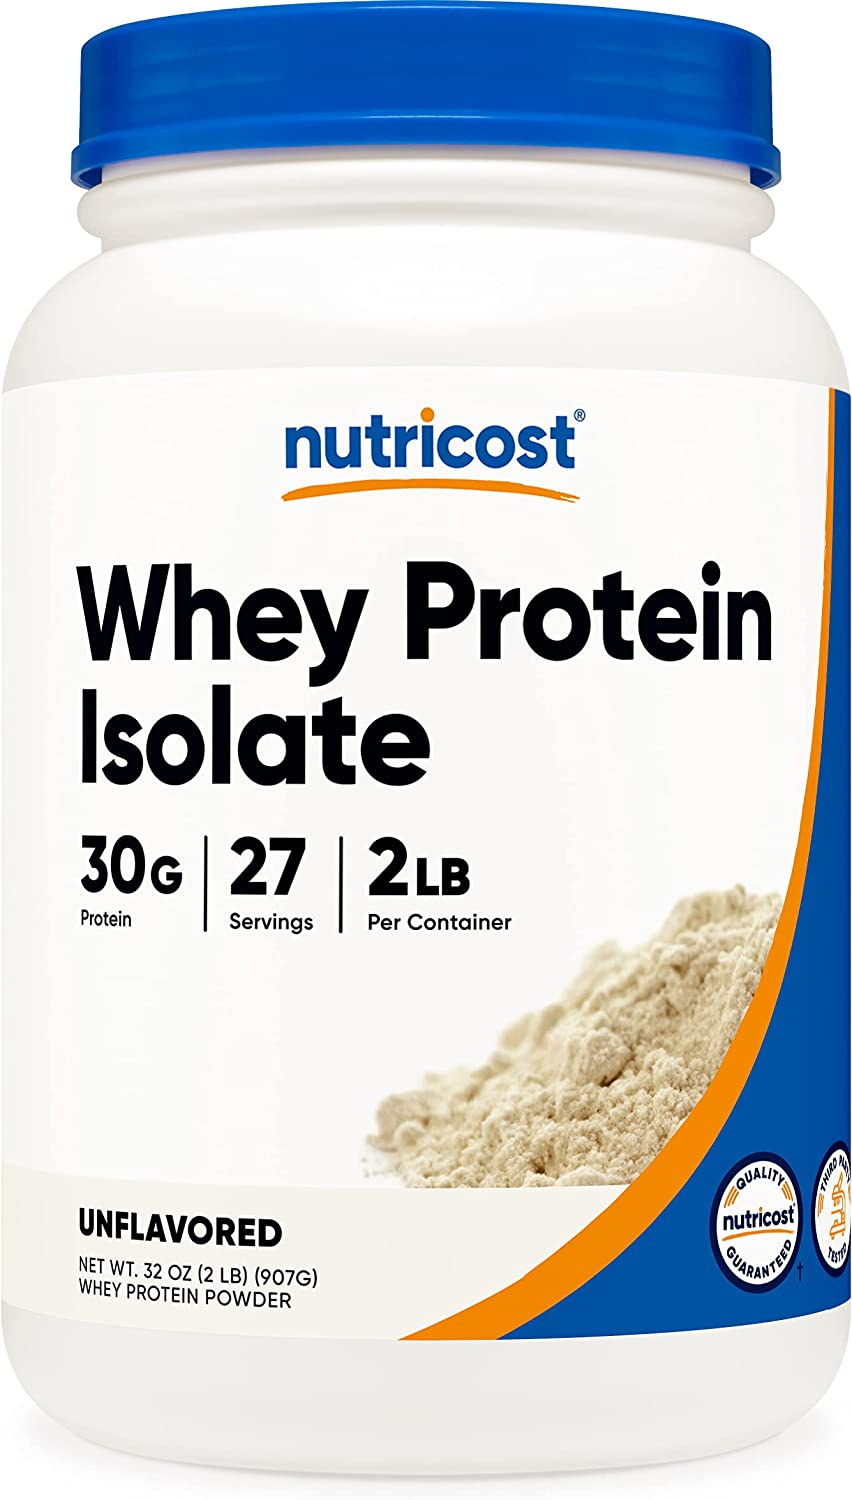 Nutricost Whey Protein 2LBS Isolate Unflavored Sales results Sacramento Mall No. 1